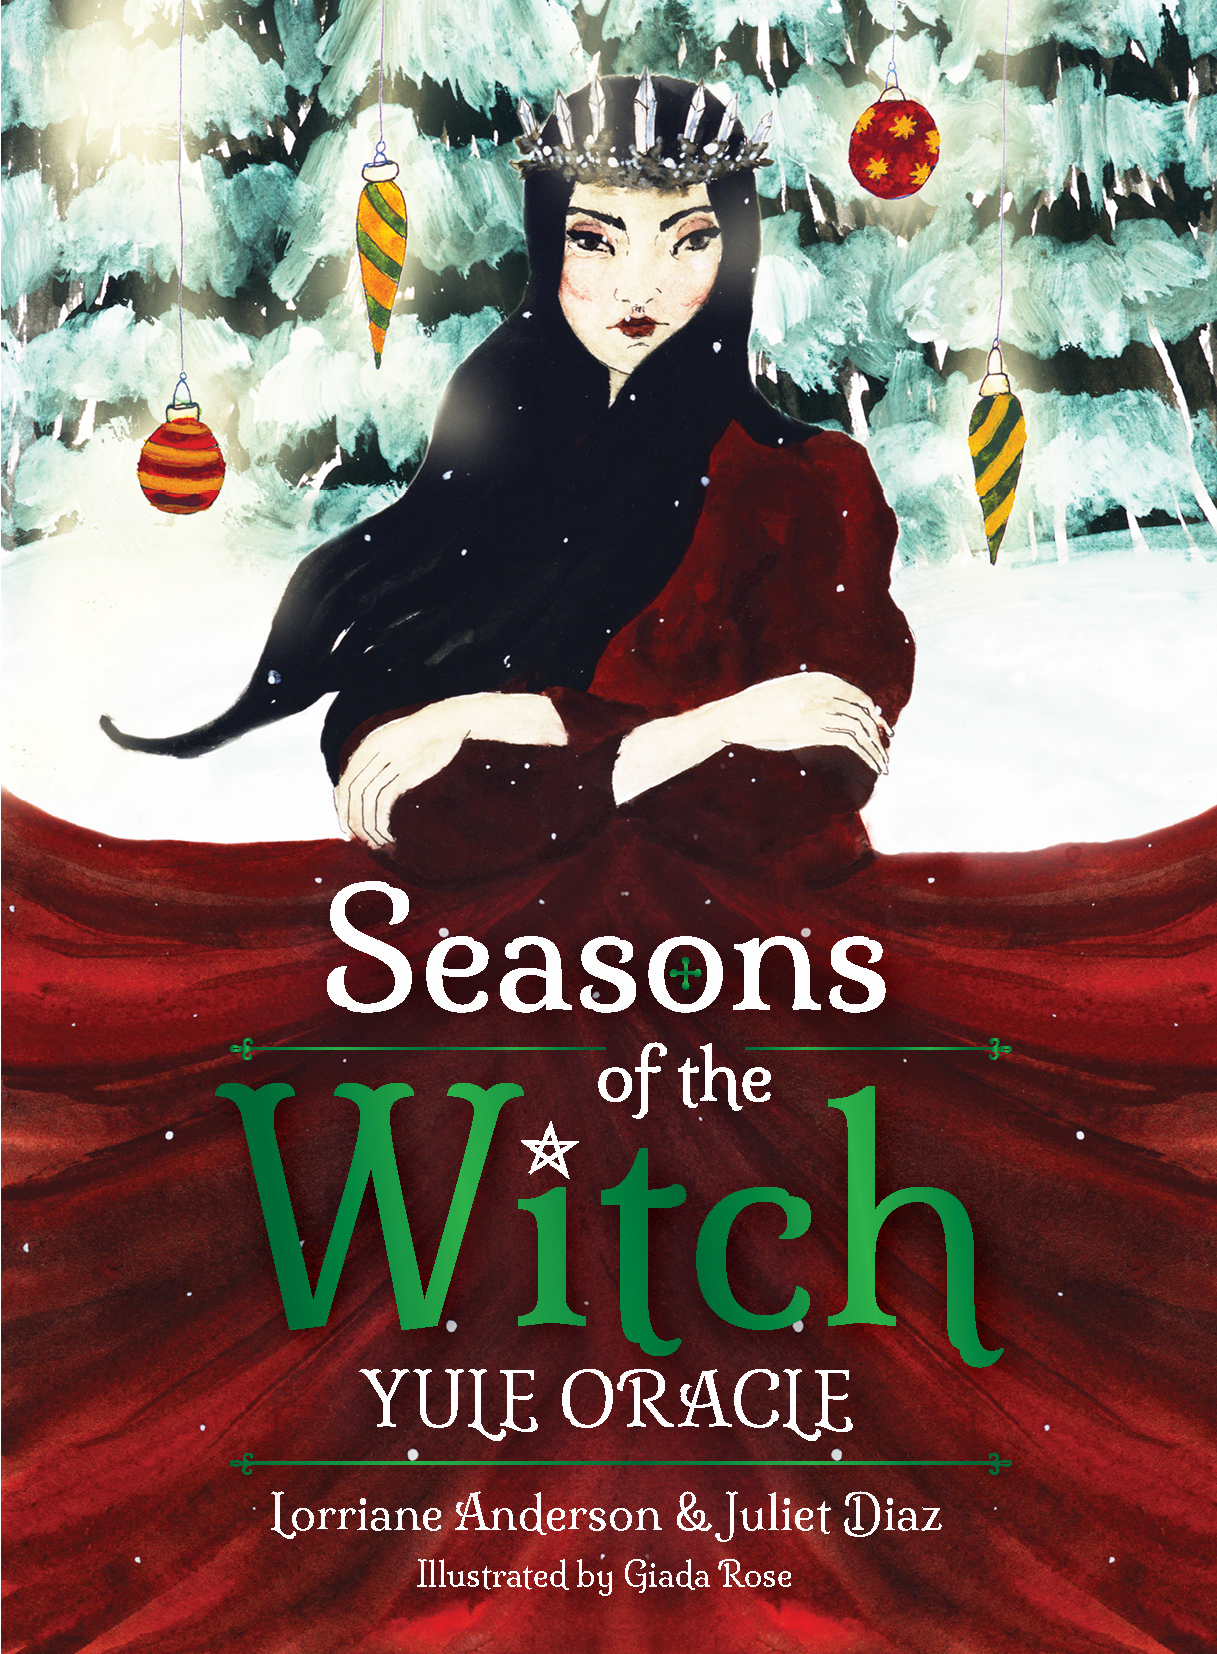 Seasons of the Witch: Yule Oracle